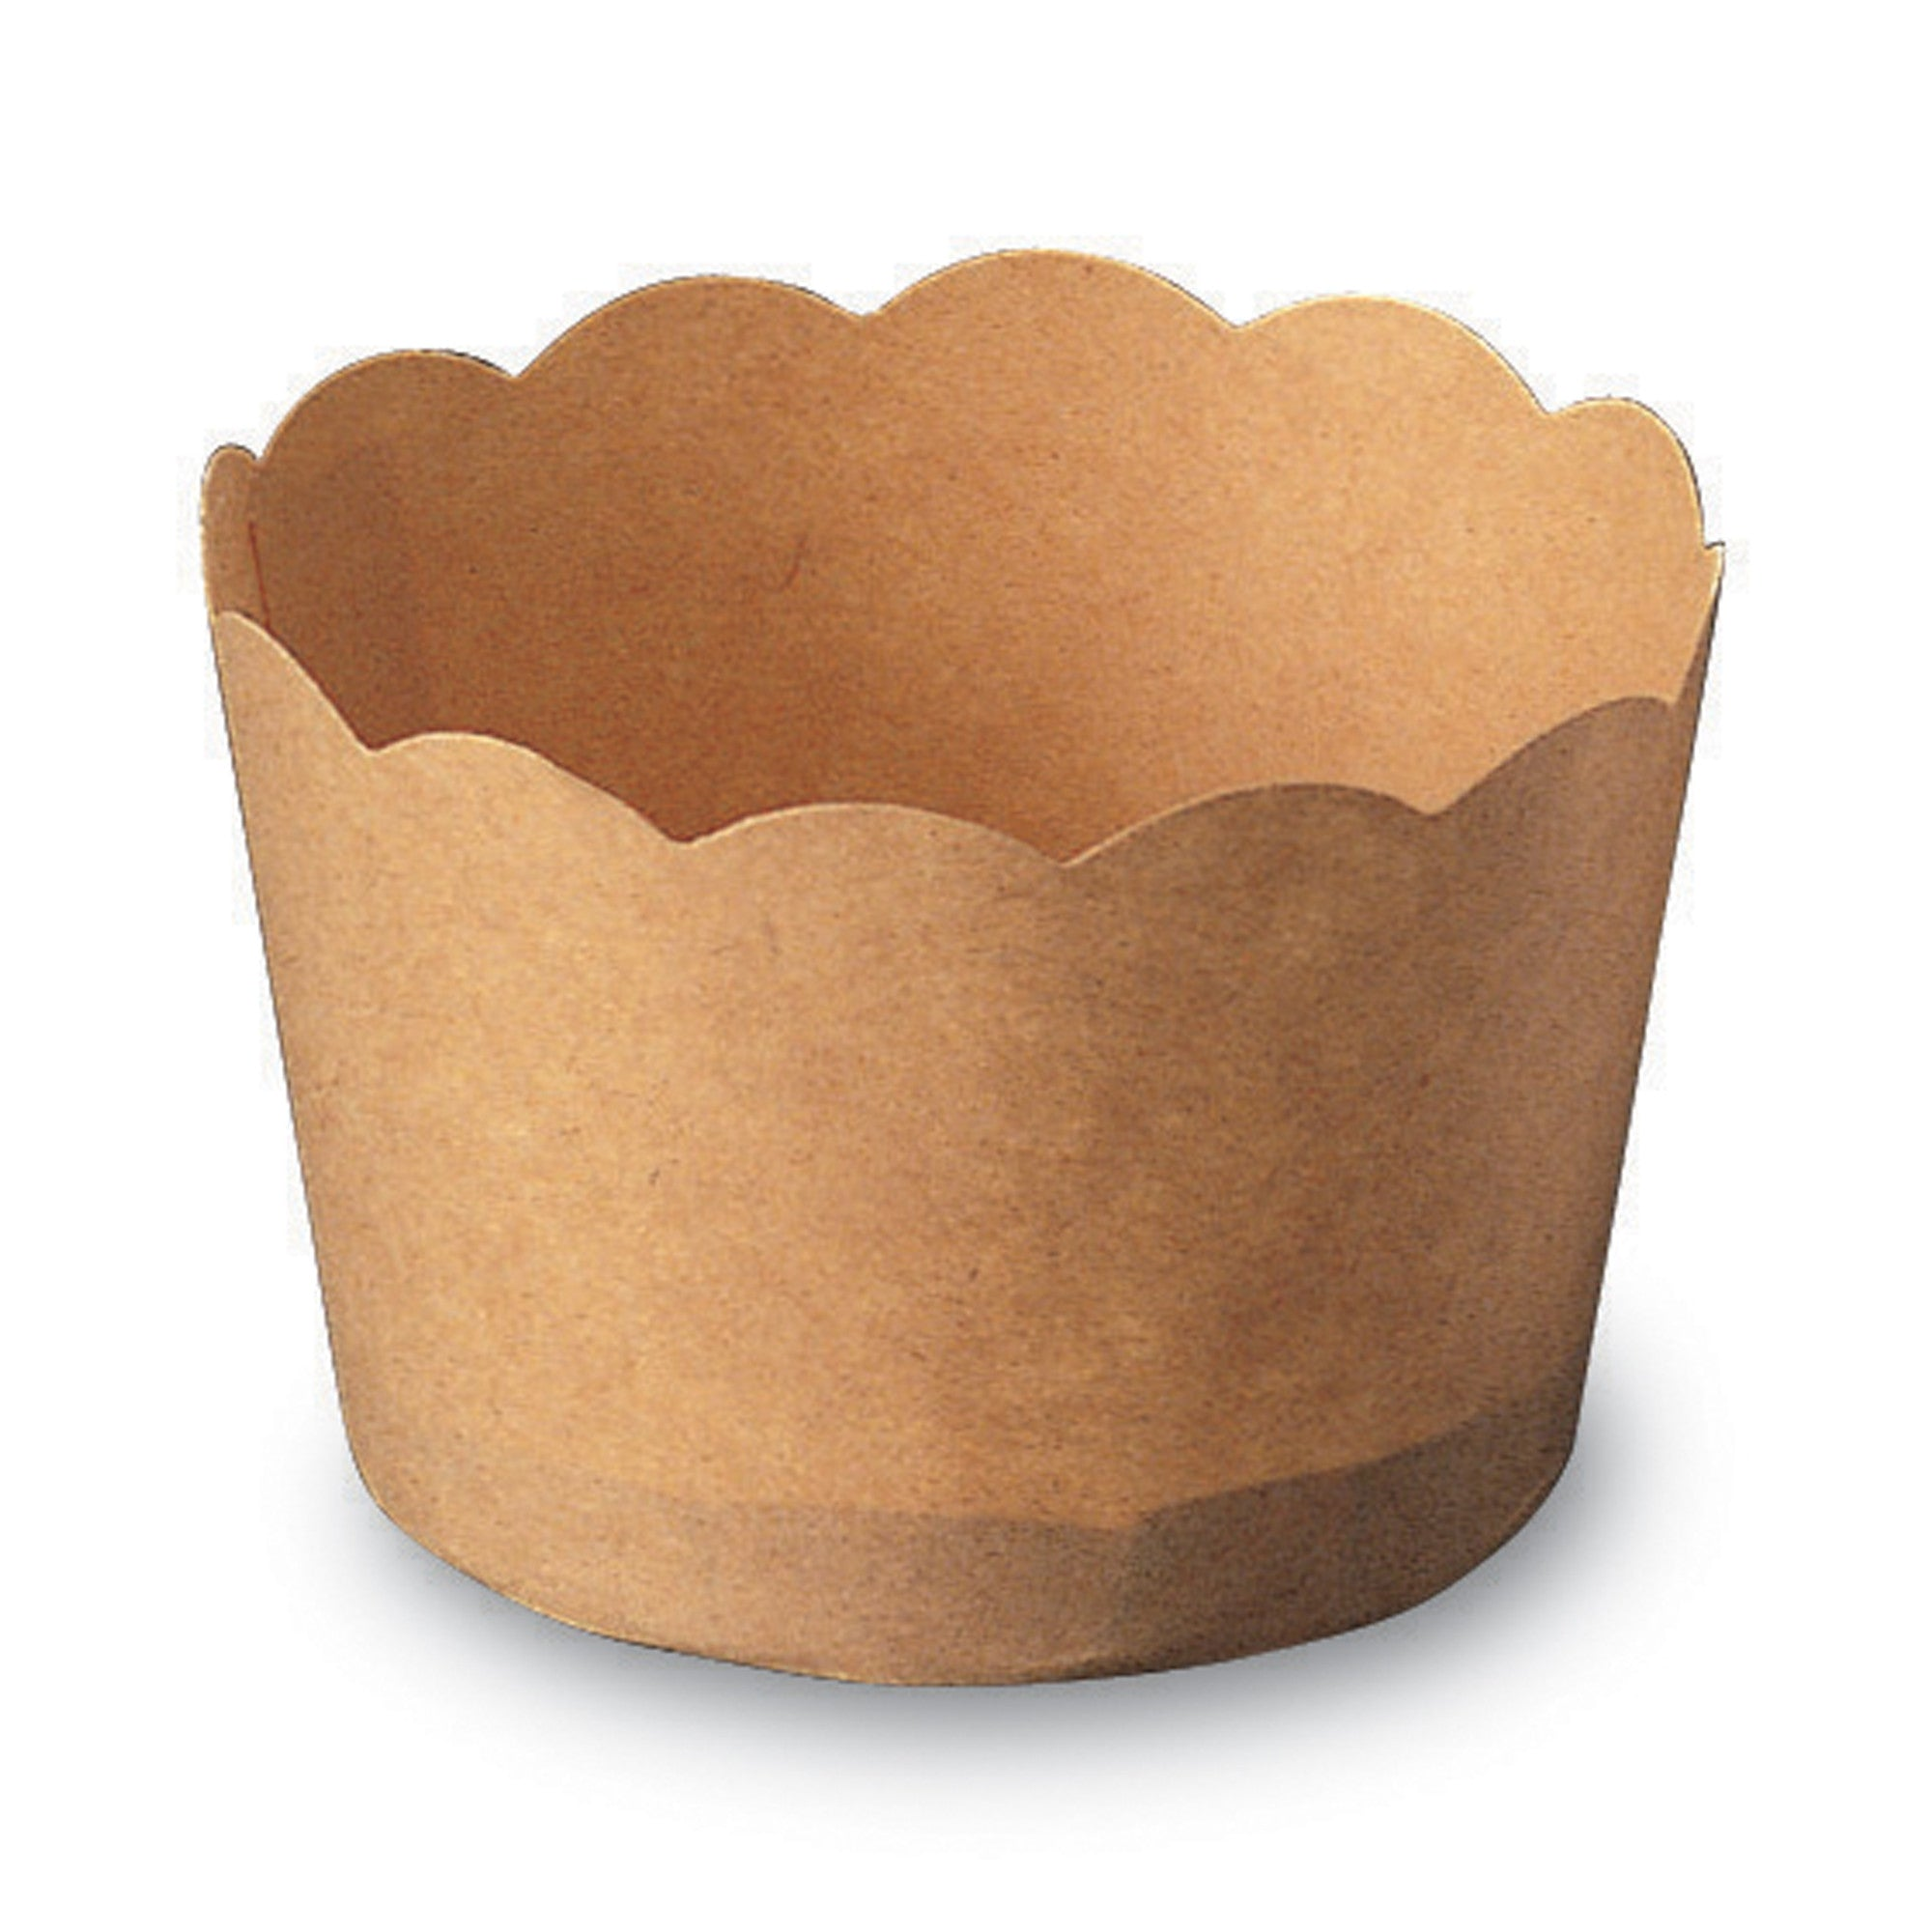 Paper Baking Cups, M509 - Welcome Home Brands